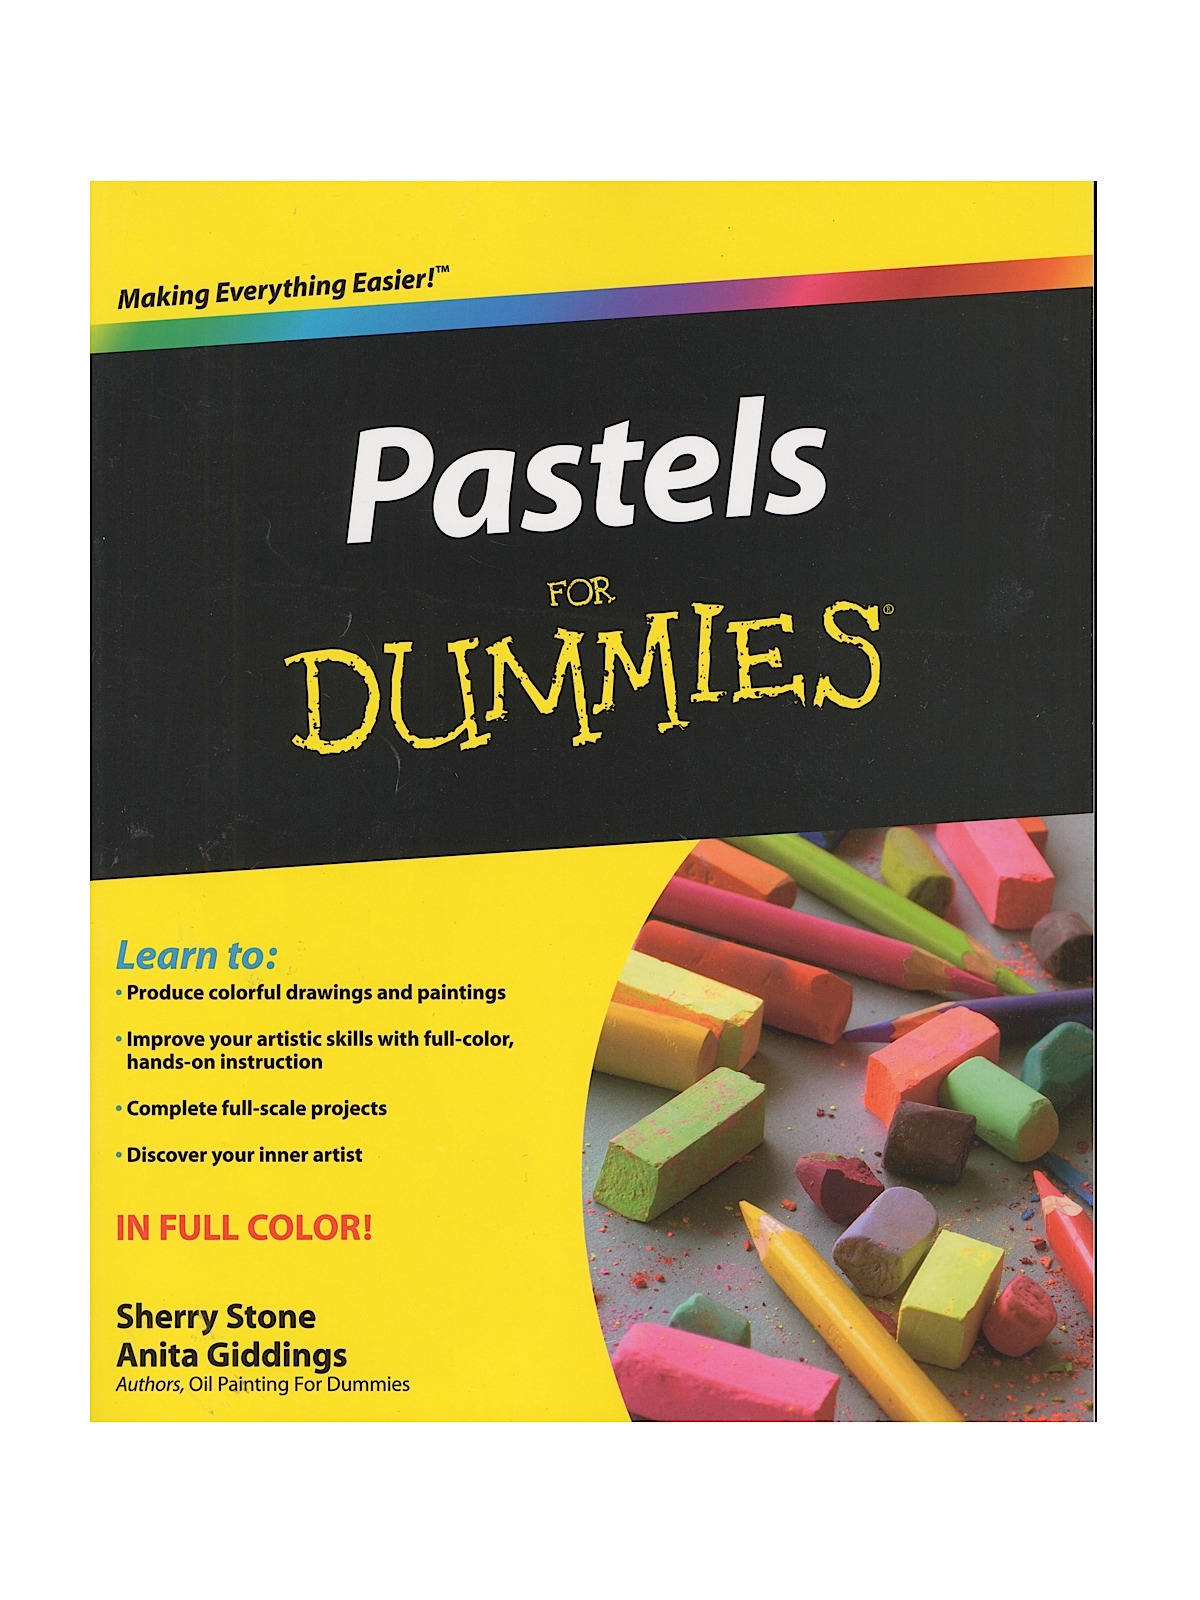 Wiley publishing inc for dummies series